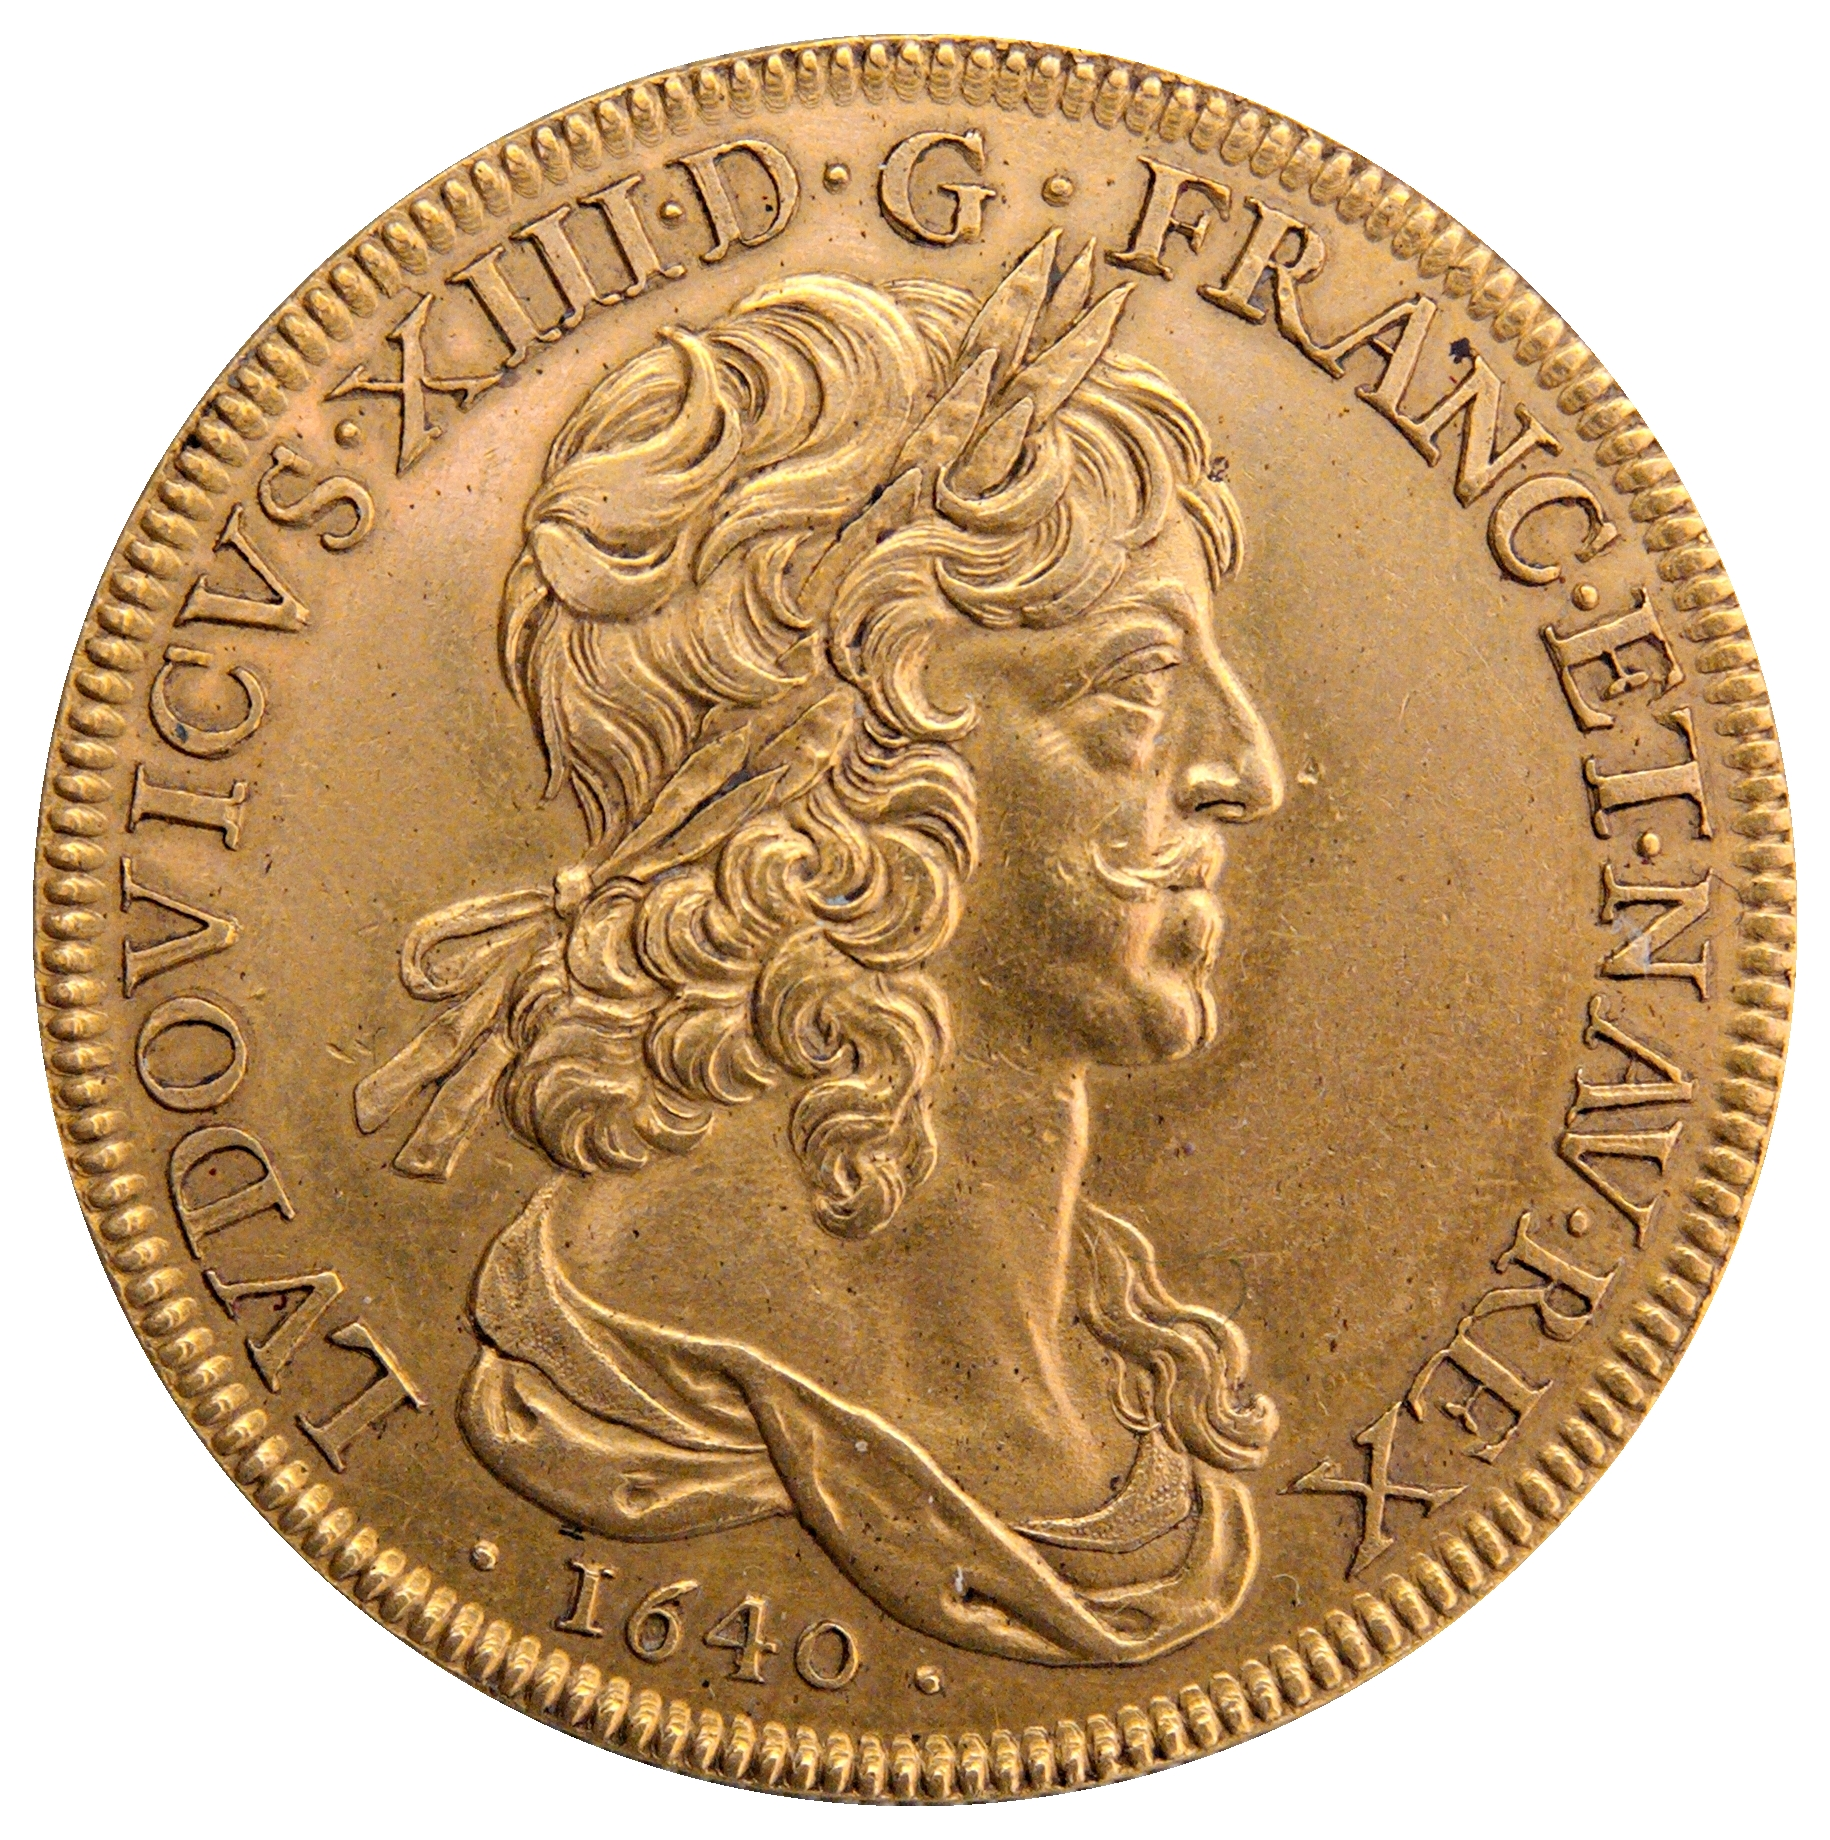 File:Ten-louis coin Louis XIII 1640 CdM Paris BN2280.jpg